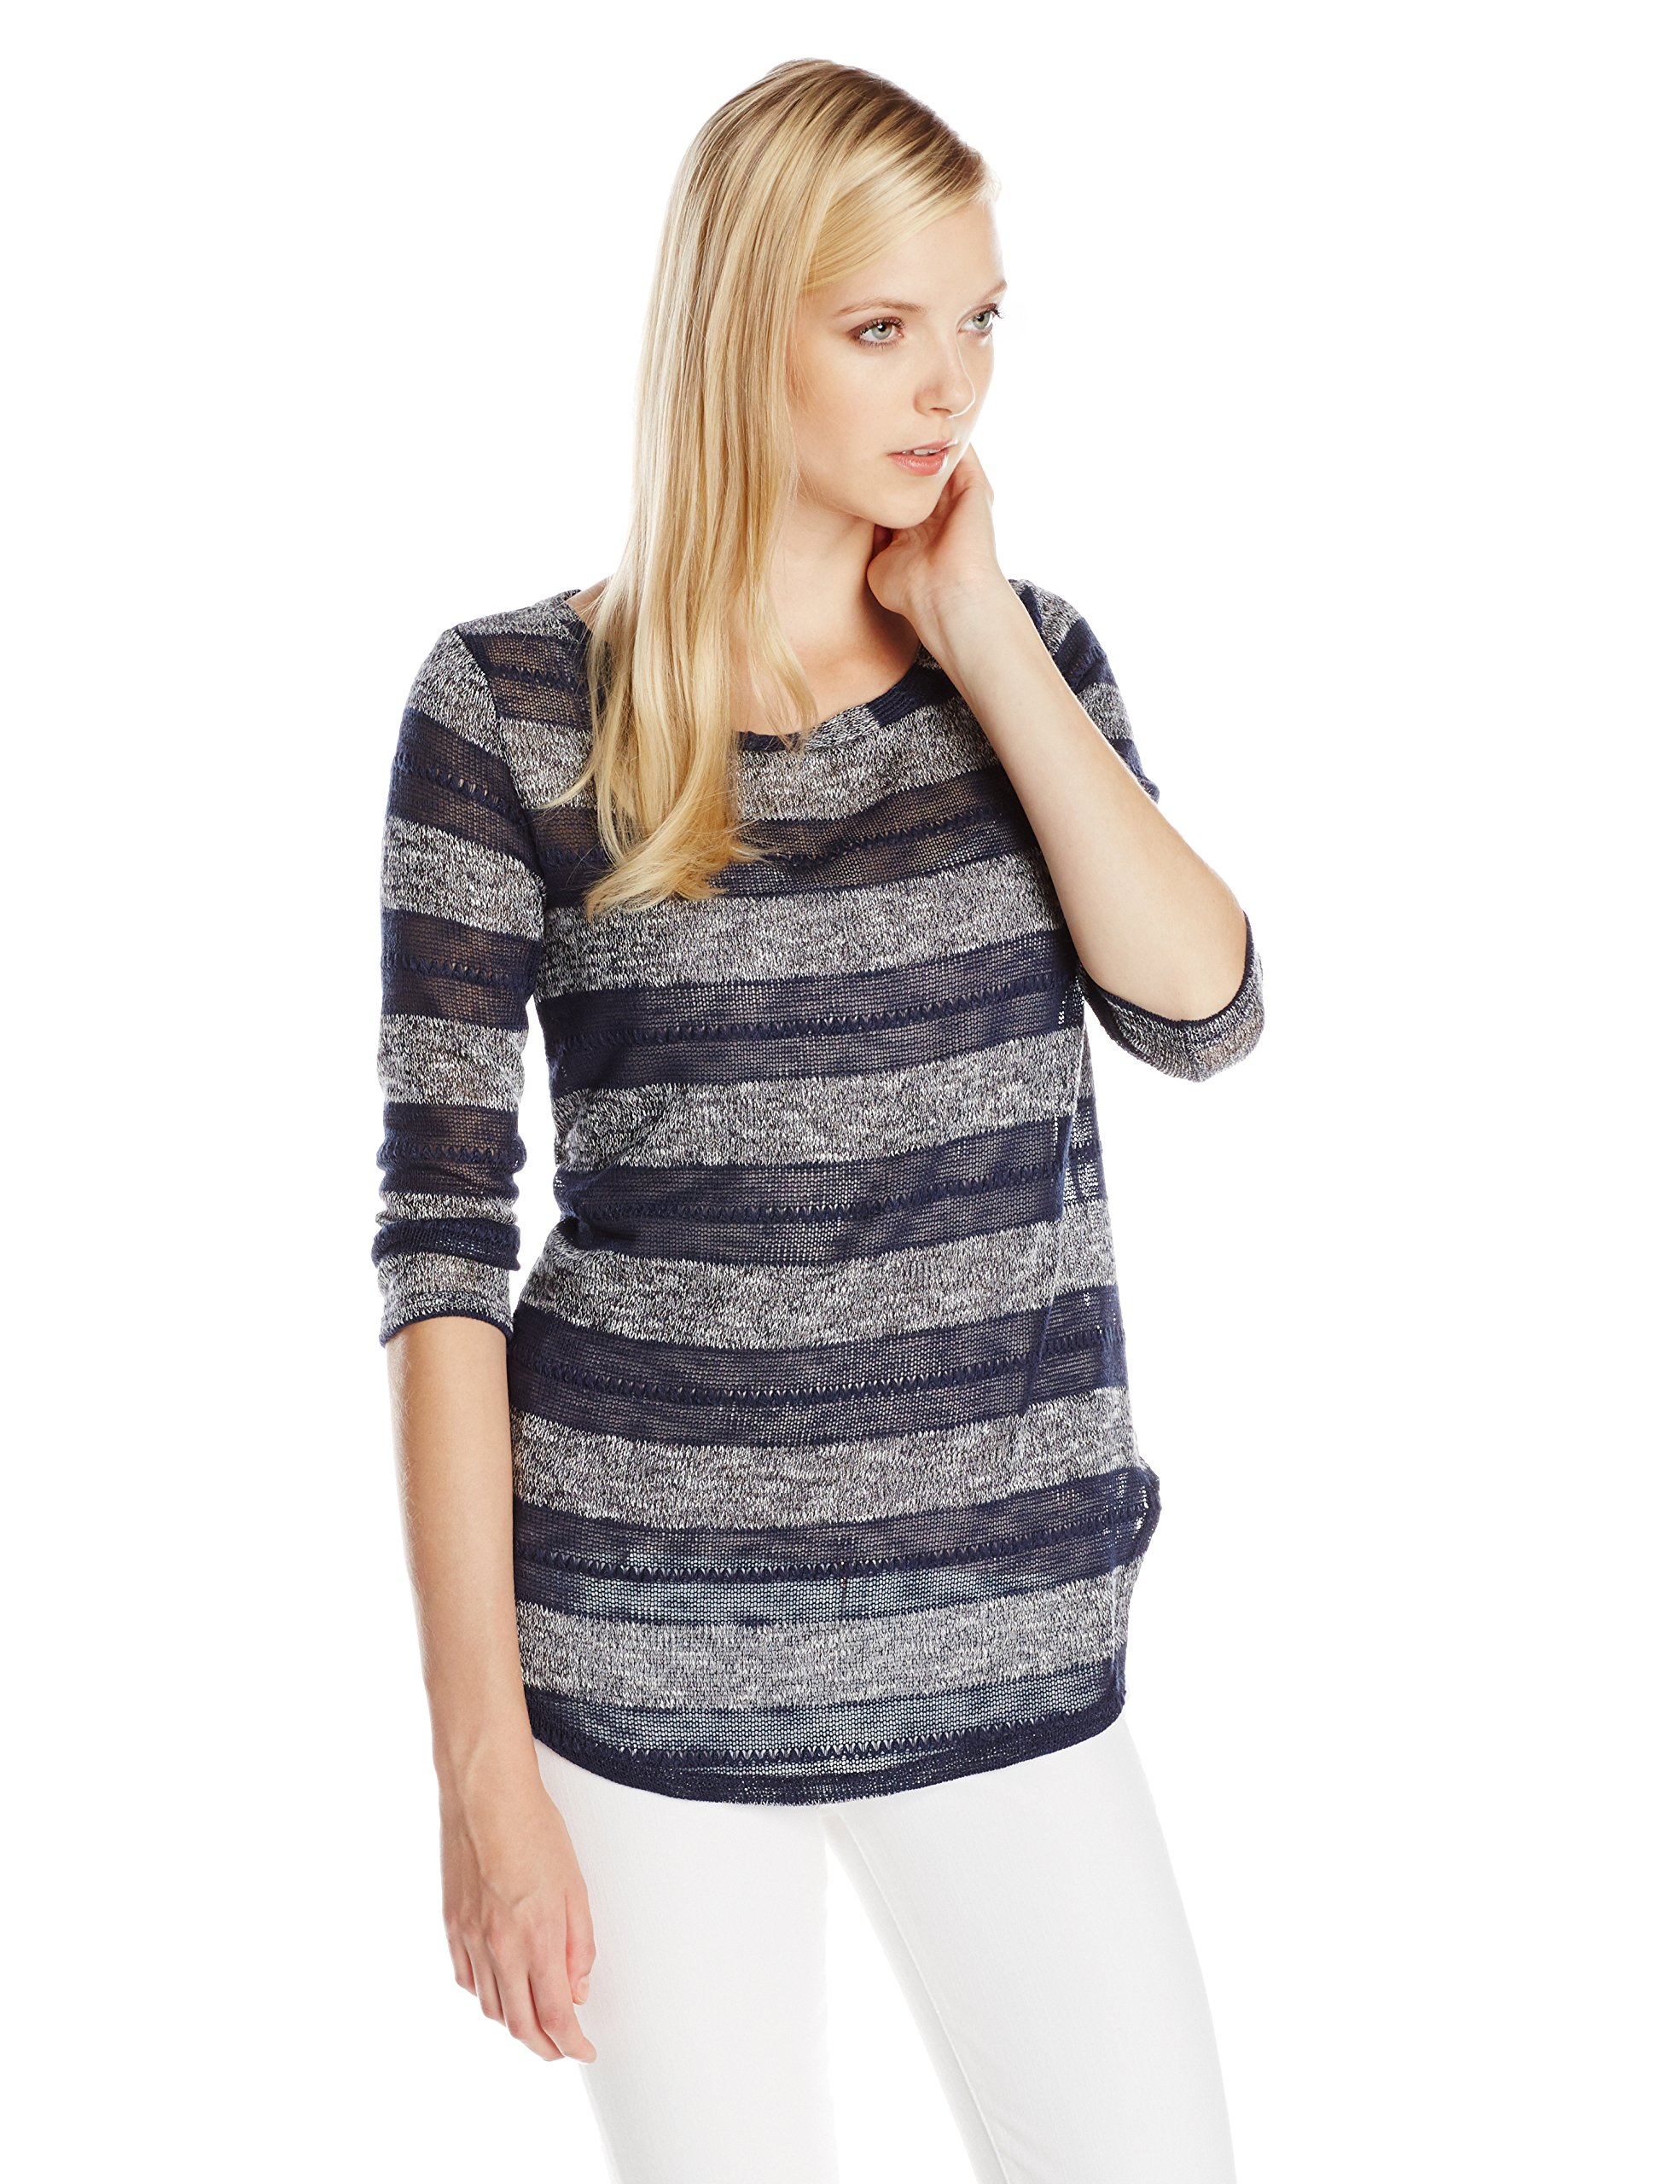 Rayures Col Femme Rugby Longues Bateau Manches Loose FabricantSmall À Pointelle MulticolorenavyFr38taille Splendid StripedHaut ARqjL354